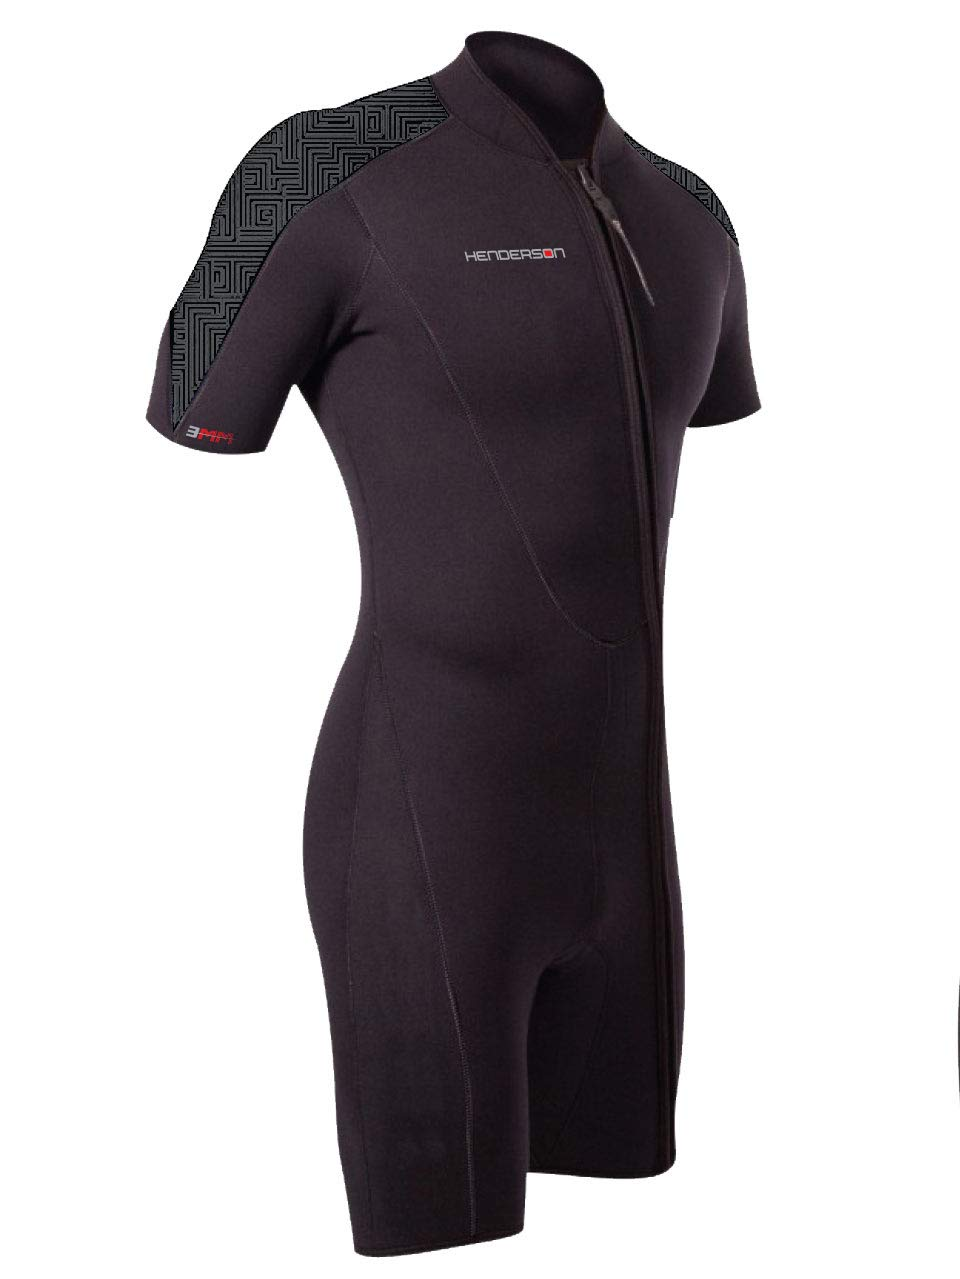 Henderson Thermoprene PRO Mens 3mm Front Zip Shorty Wetsuit 2XL-Tall Black/Graphite by Henderson